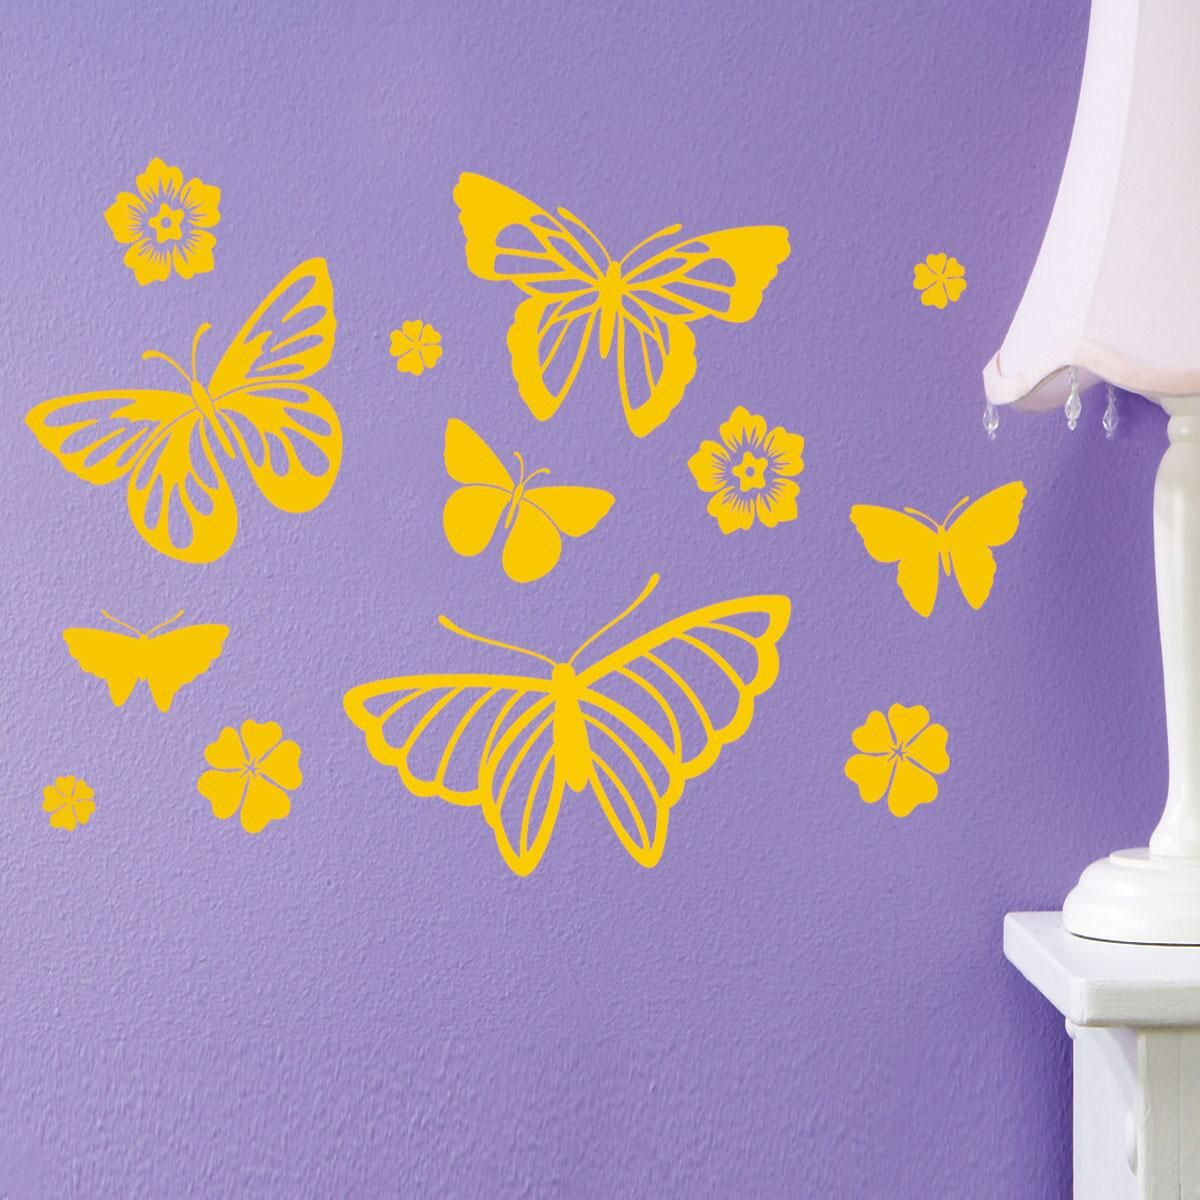 Butterflies & Flowers Vinyl Wall Art